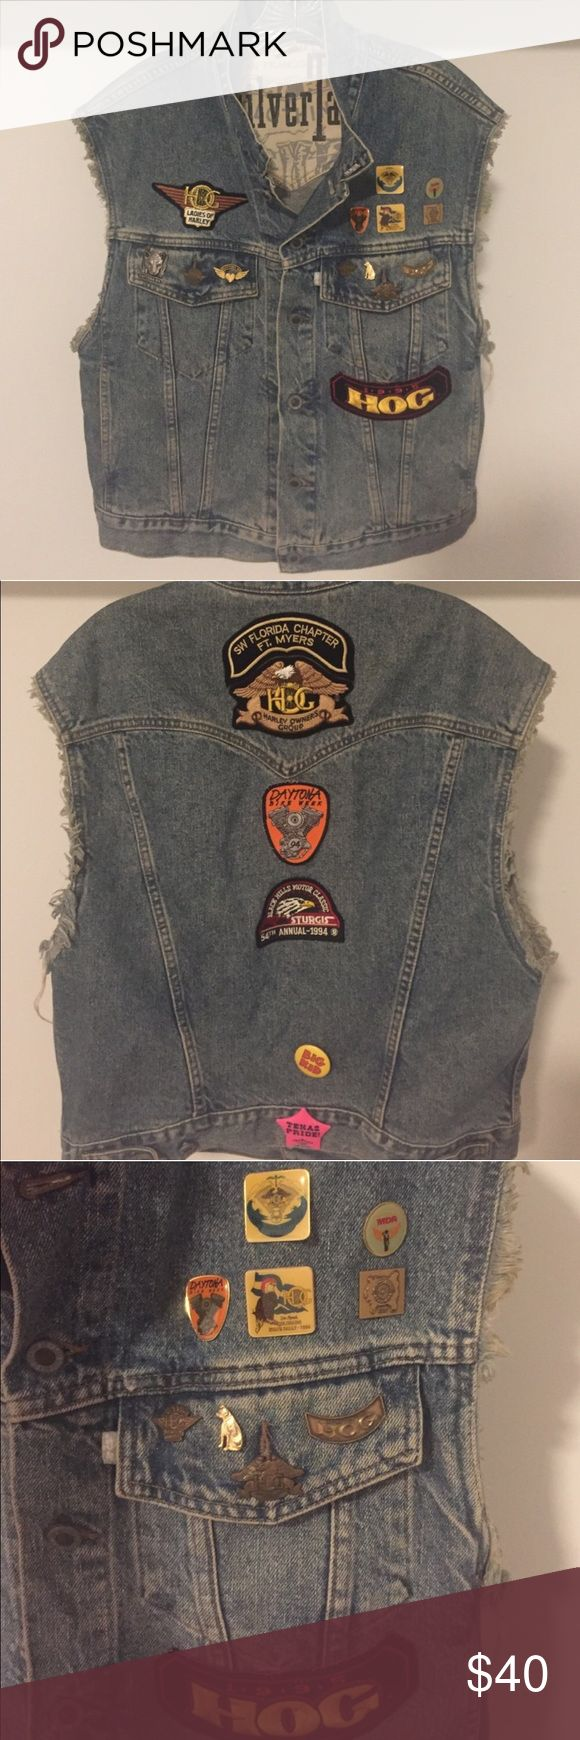 Levi's vest w biker patches / pins Really cool 90's oversized vest. Full of different pins, mostly related to Harley Davidson Levi's Jackets & Coats Vests